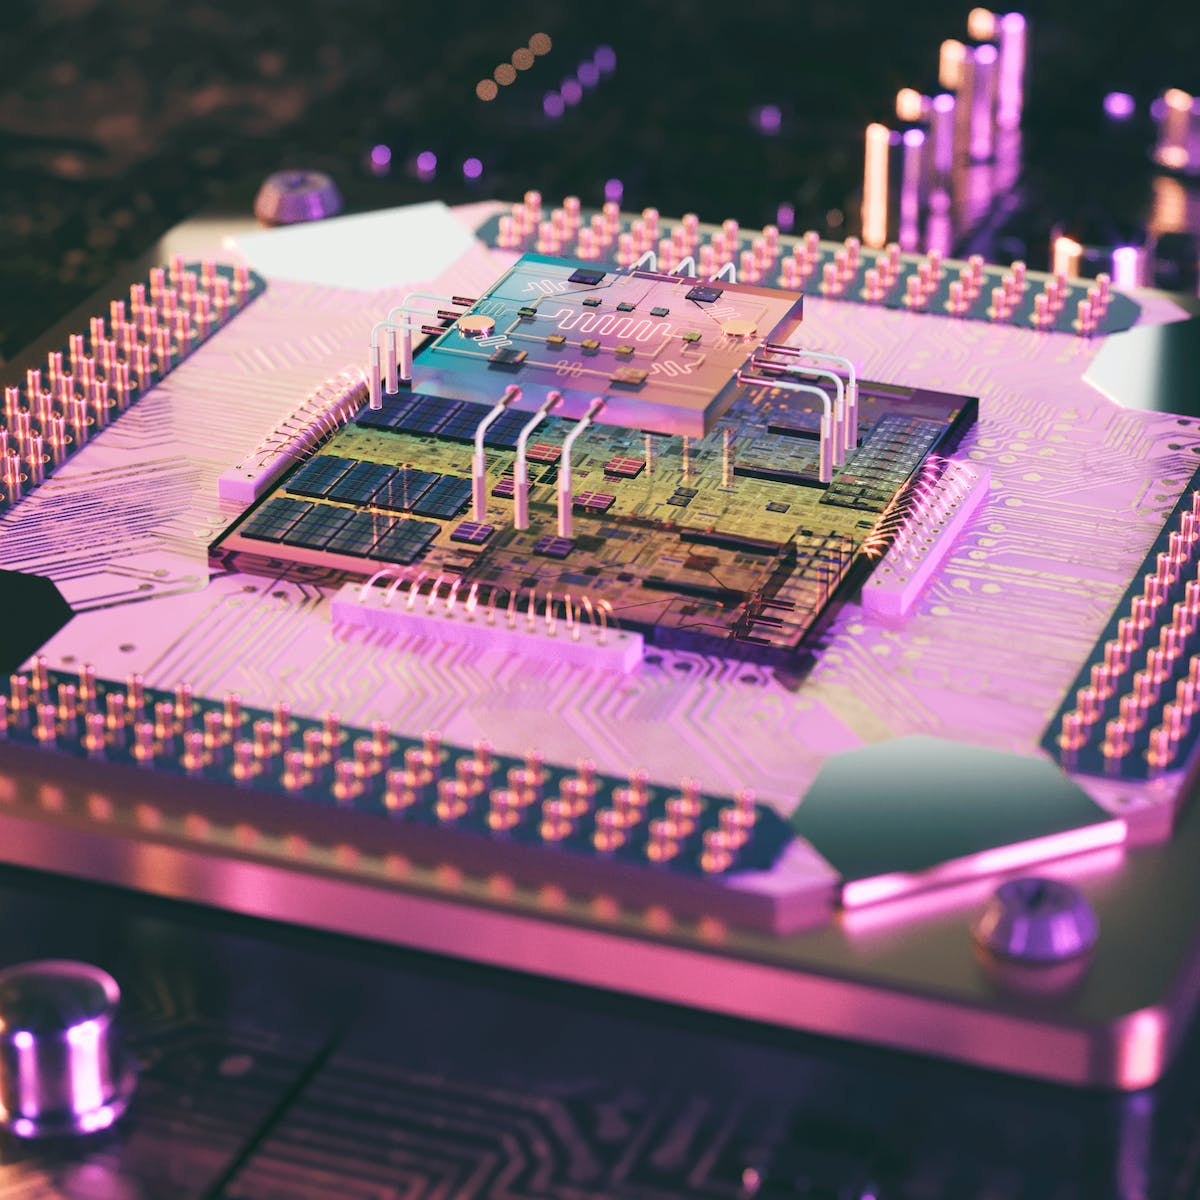 Quantum computers could arrive sooner if we build them with